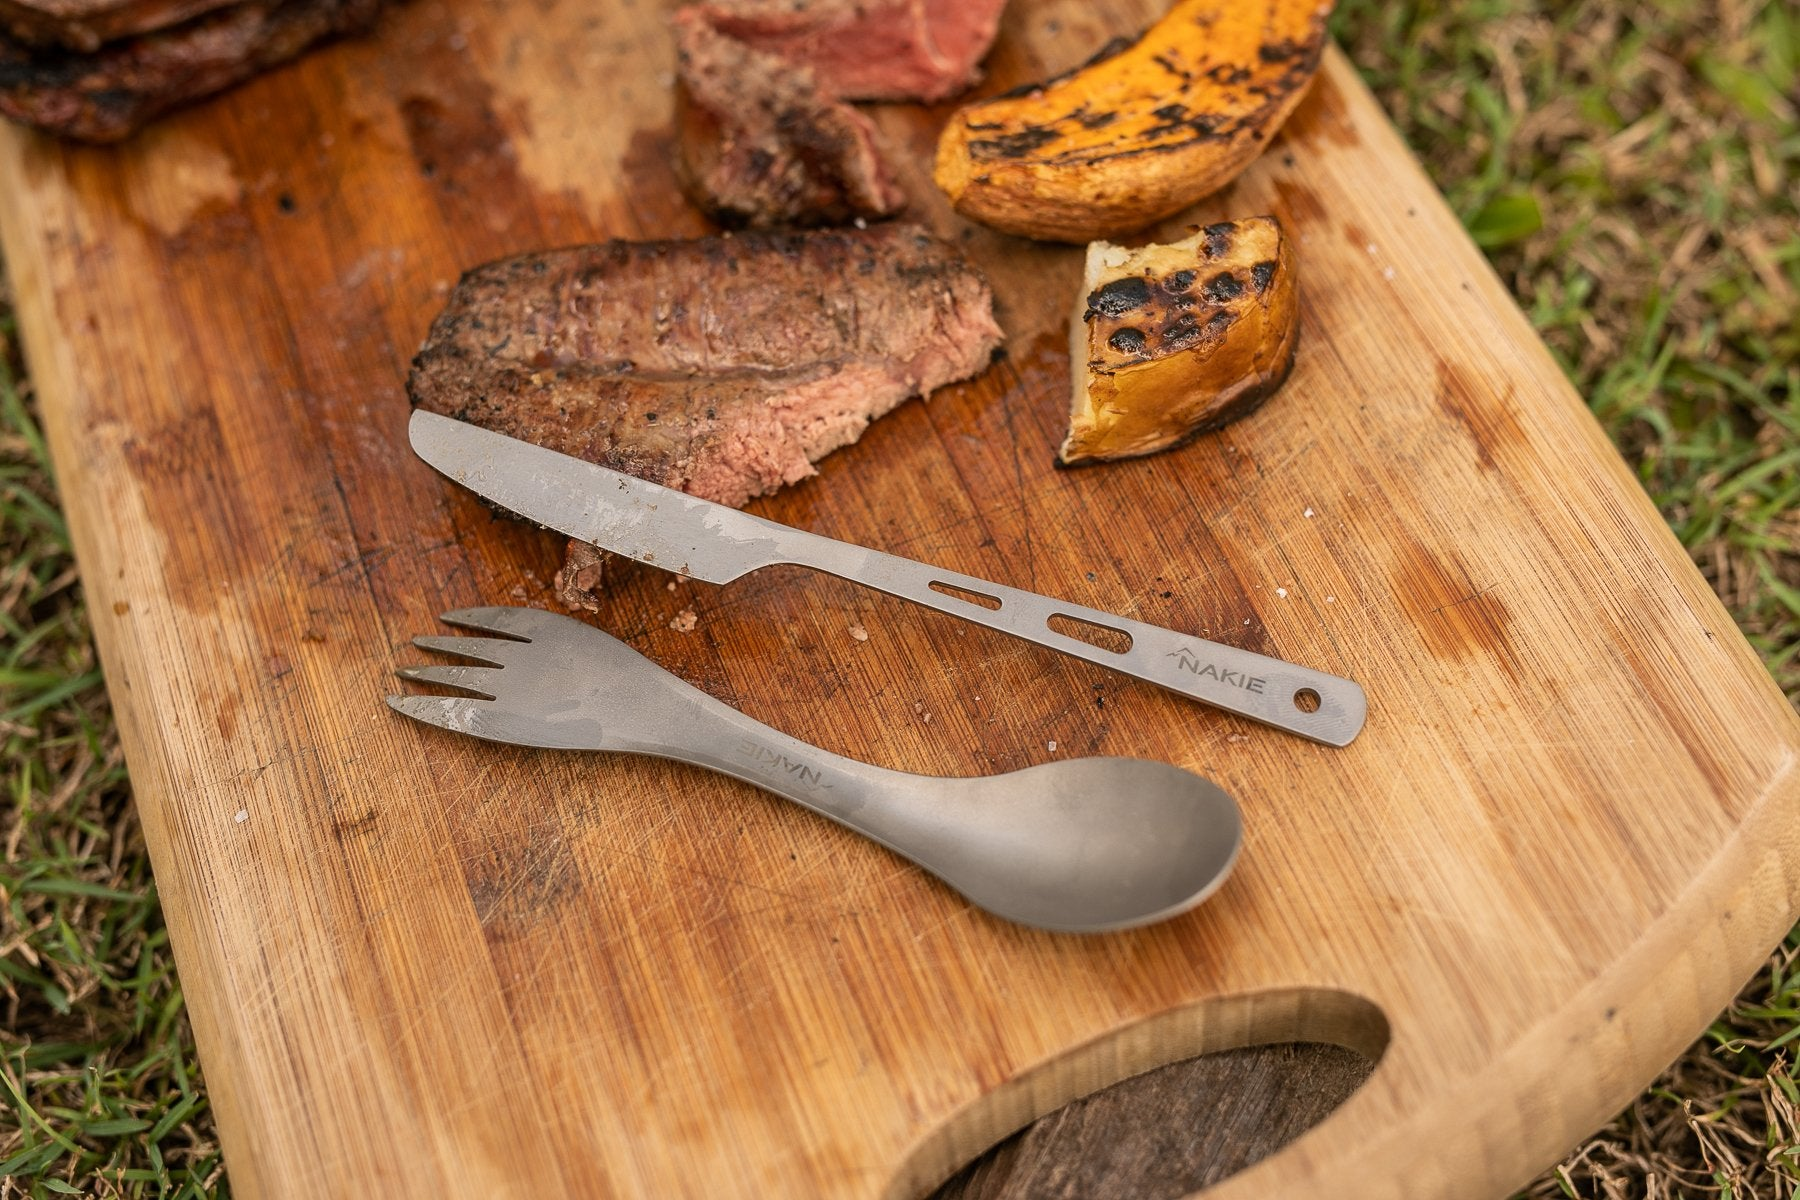 Titanium Spork and Knife Set - Nakie